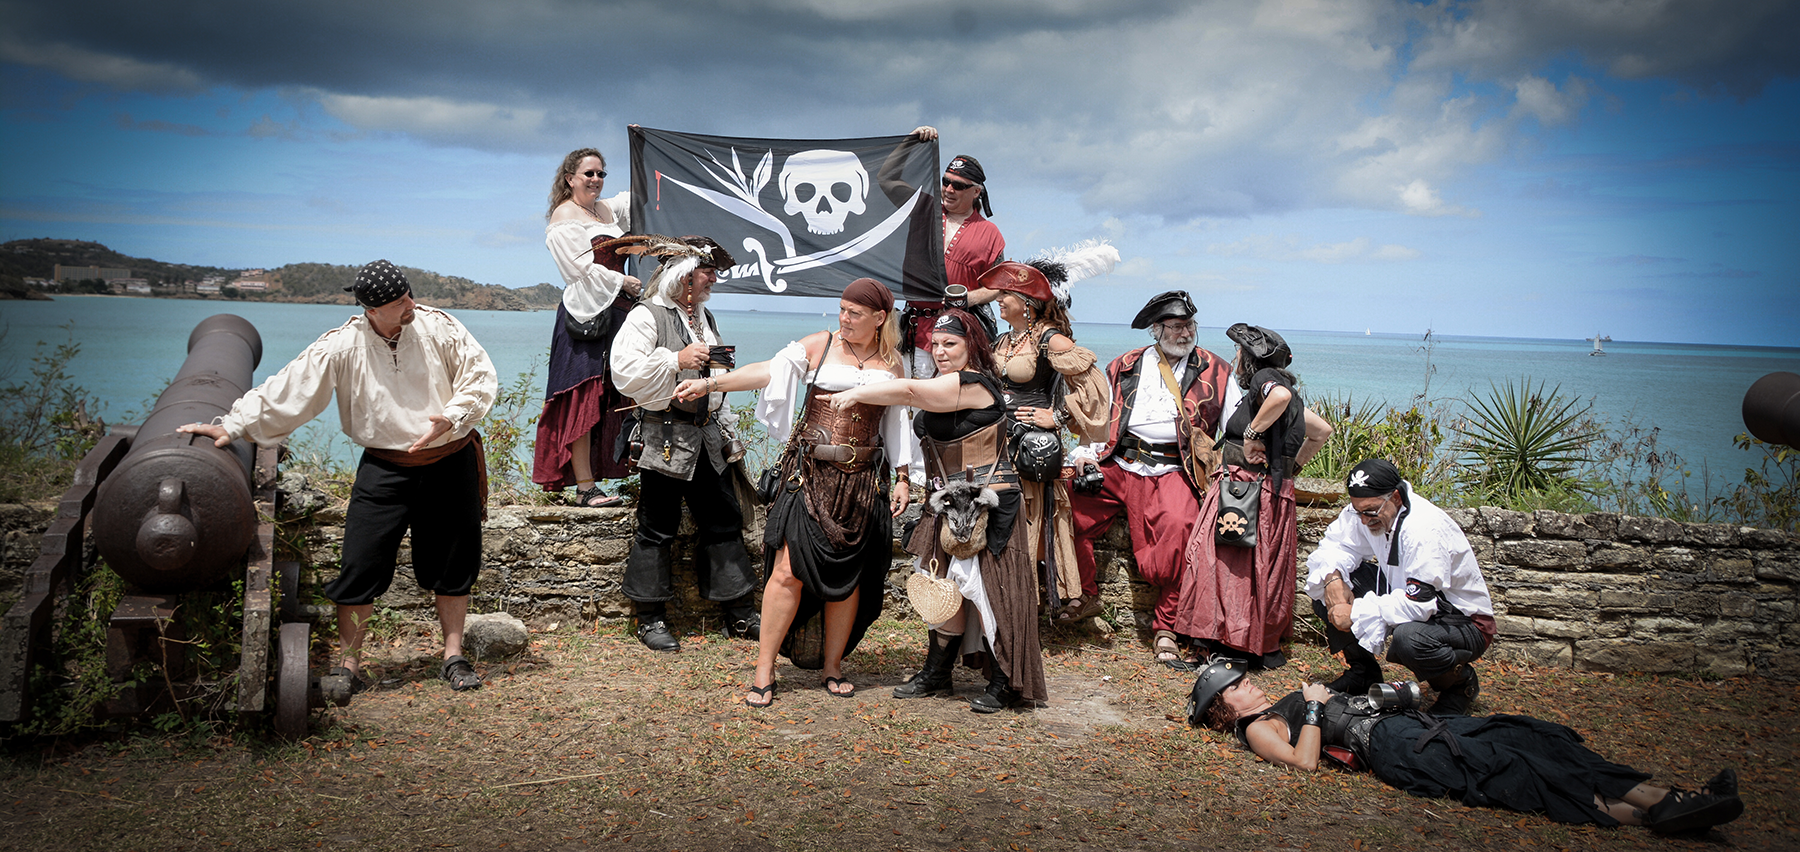 Pirates & Paradise Raid Fort James in Antigua